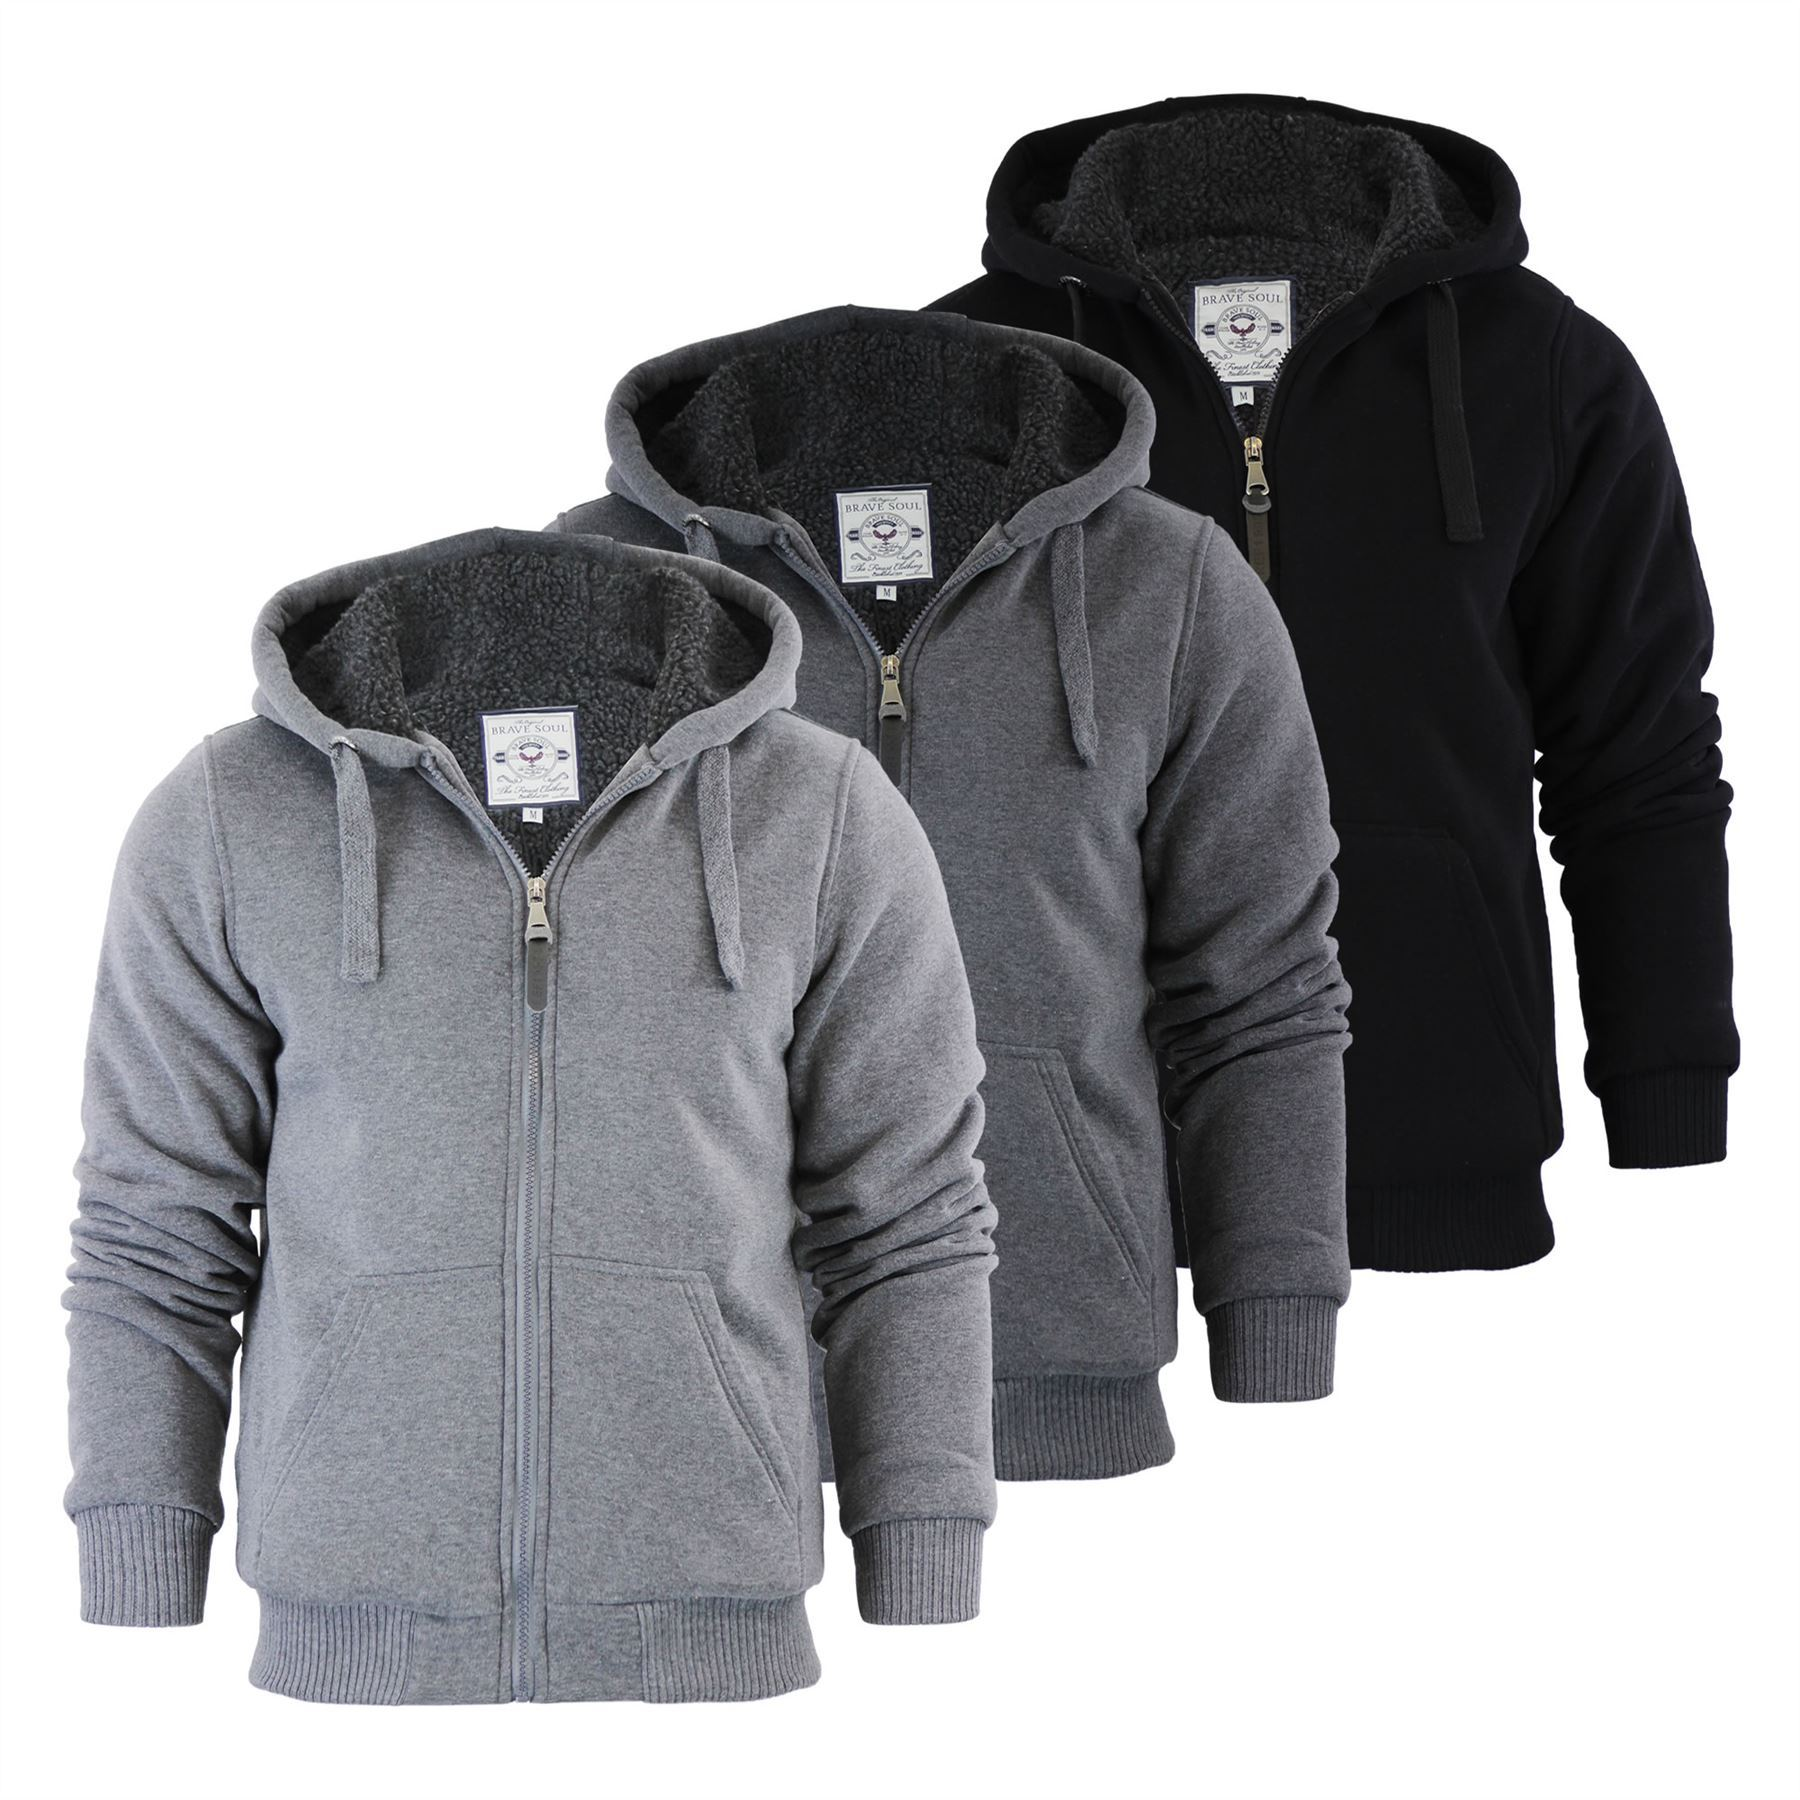 Details about Brave Soul Zone Mens Hoodie Sherpa Fleece Lined Zip Up Hooded Sweater